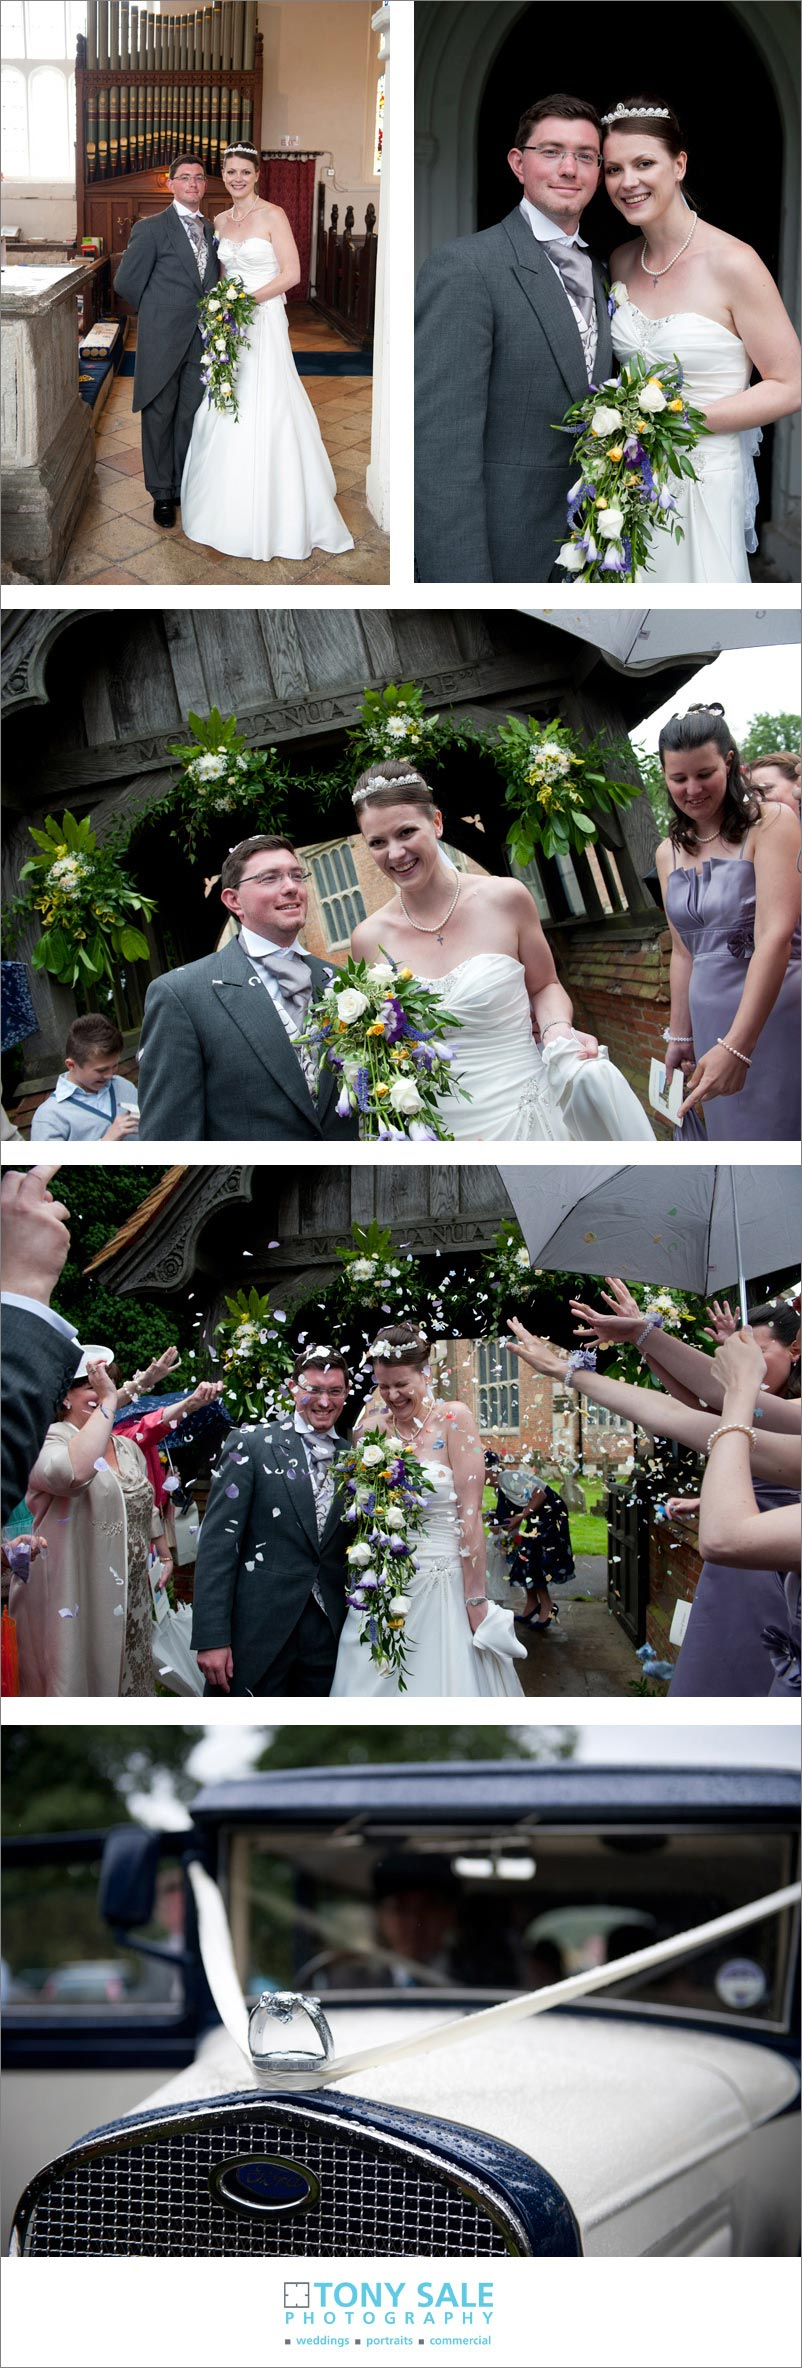 Bride and groom showered in confetti at Gosfield church